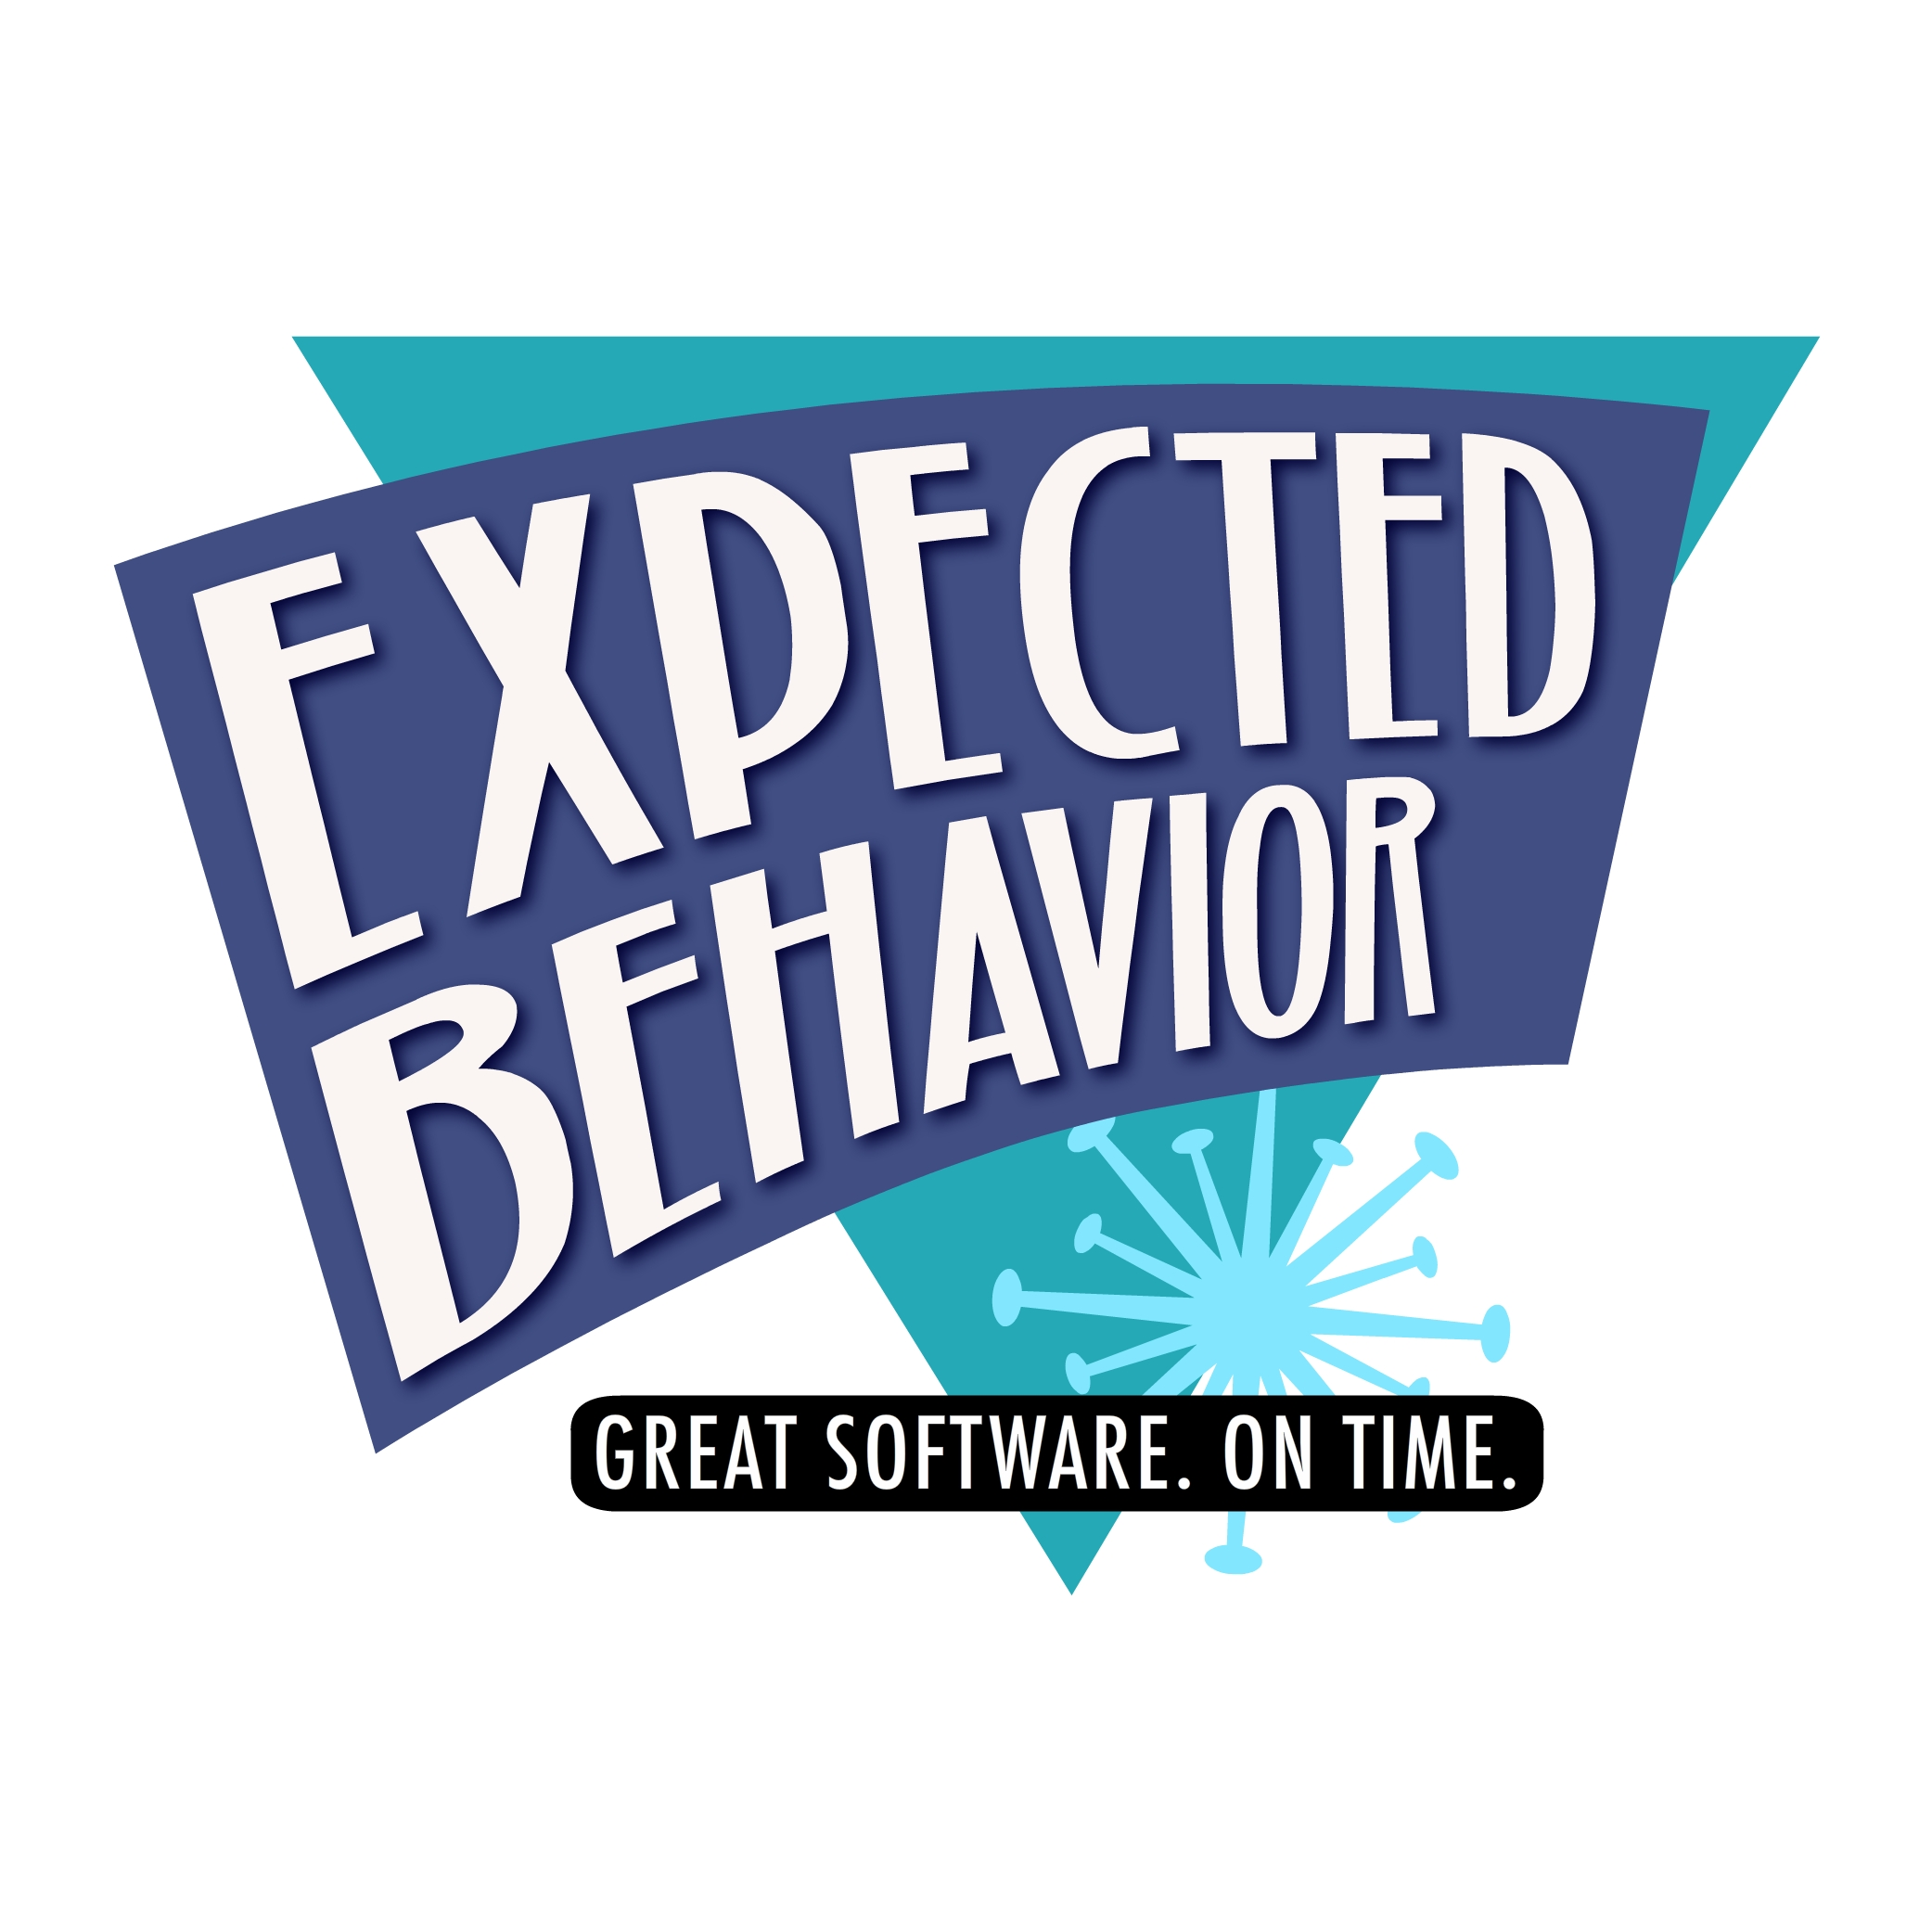 EXPECTED BEHAVIOR